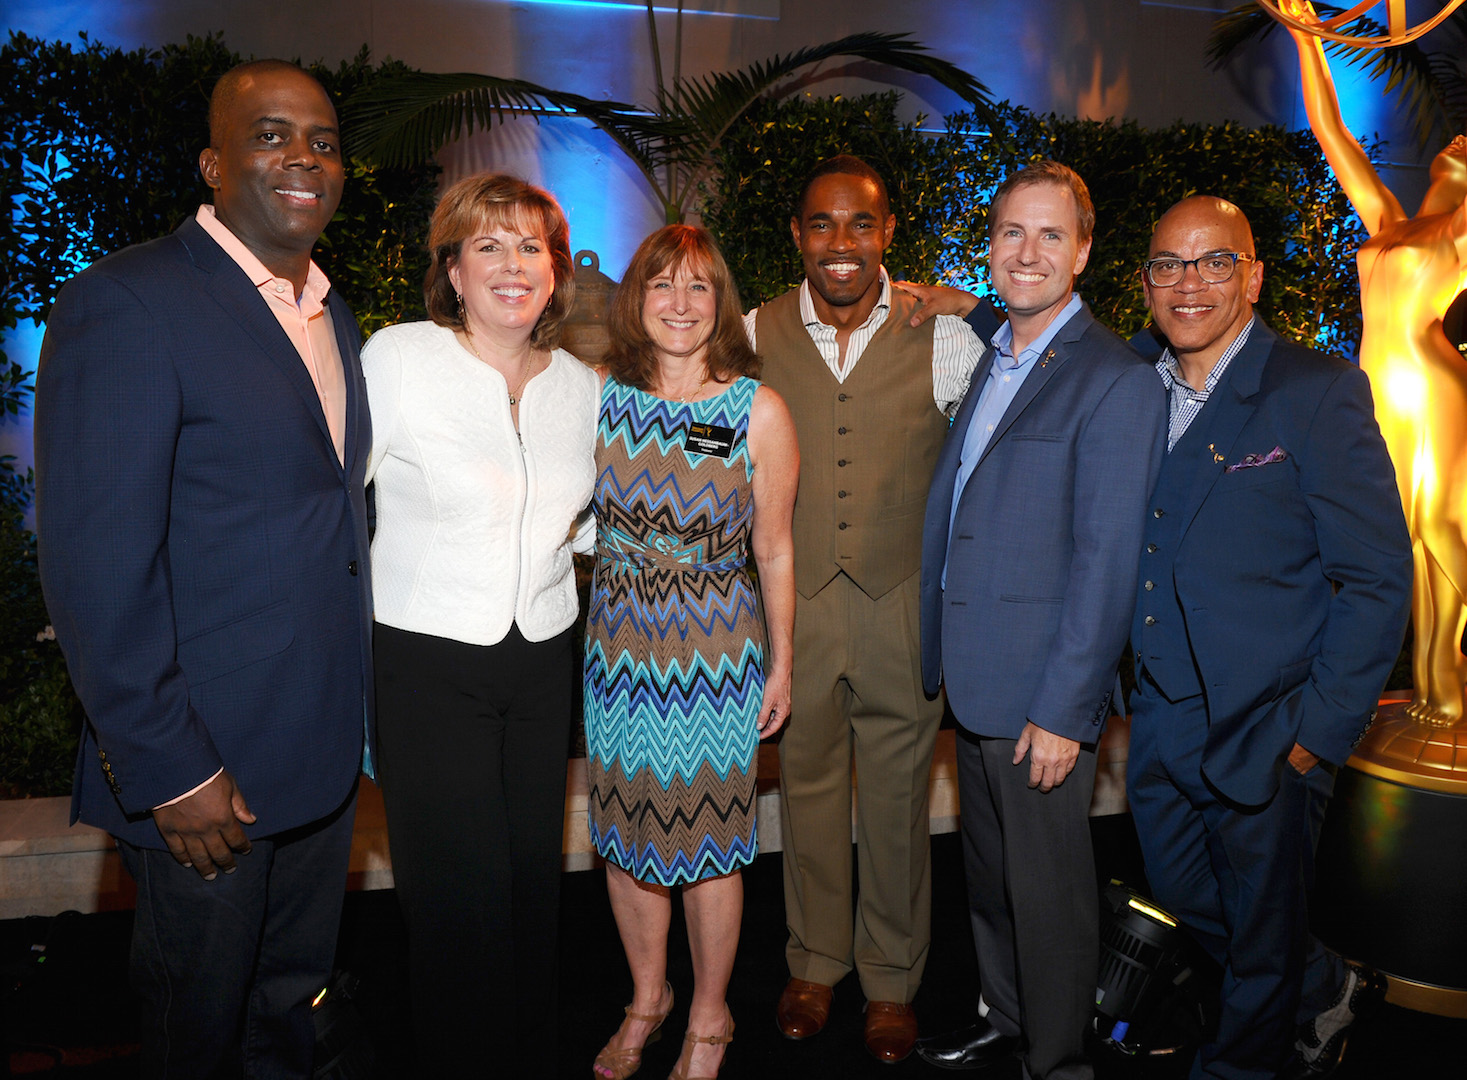 Marcelino Ford-Livene, from left, Ilyanne Morden Kichaven, executive director of SAG-AFTRA, Susan Nessanbaum-Goldberg, Jason George, Maury McIntyre, President and COO, the Television Academy and Rickey Minor seen at the Television Academy's 67th Emmy Awards Dynamic and Diverse Nominee Reception at the Montage Beverly Hills on Thursday, Aug. 27, 2015, in Beverly Hills, Calif. (Photo by Vince Bucci/Invision for the Television Academy/AP Images)